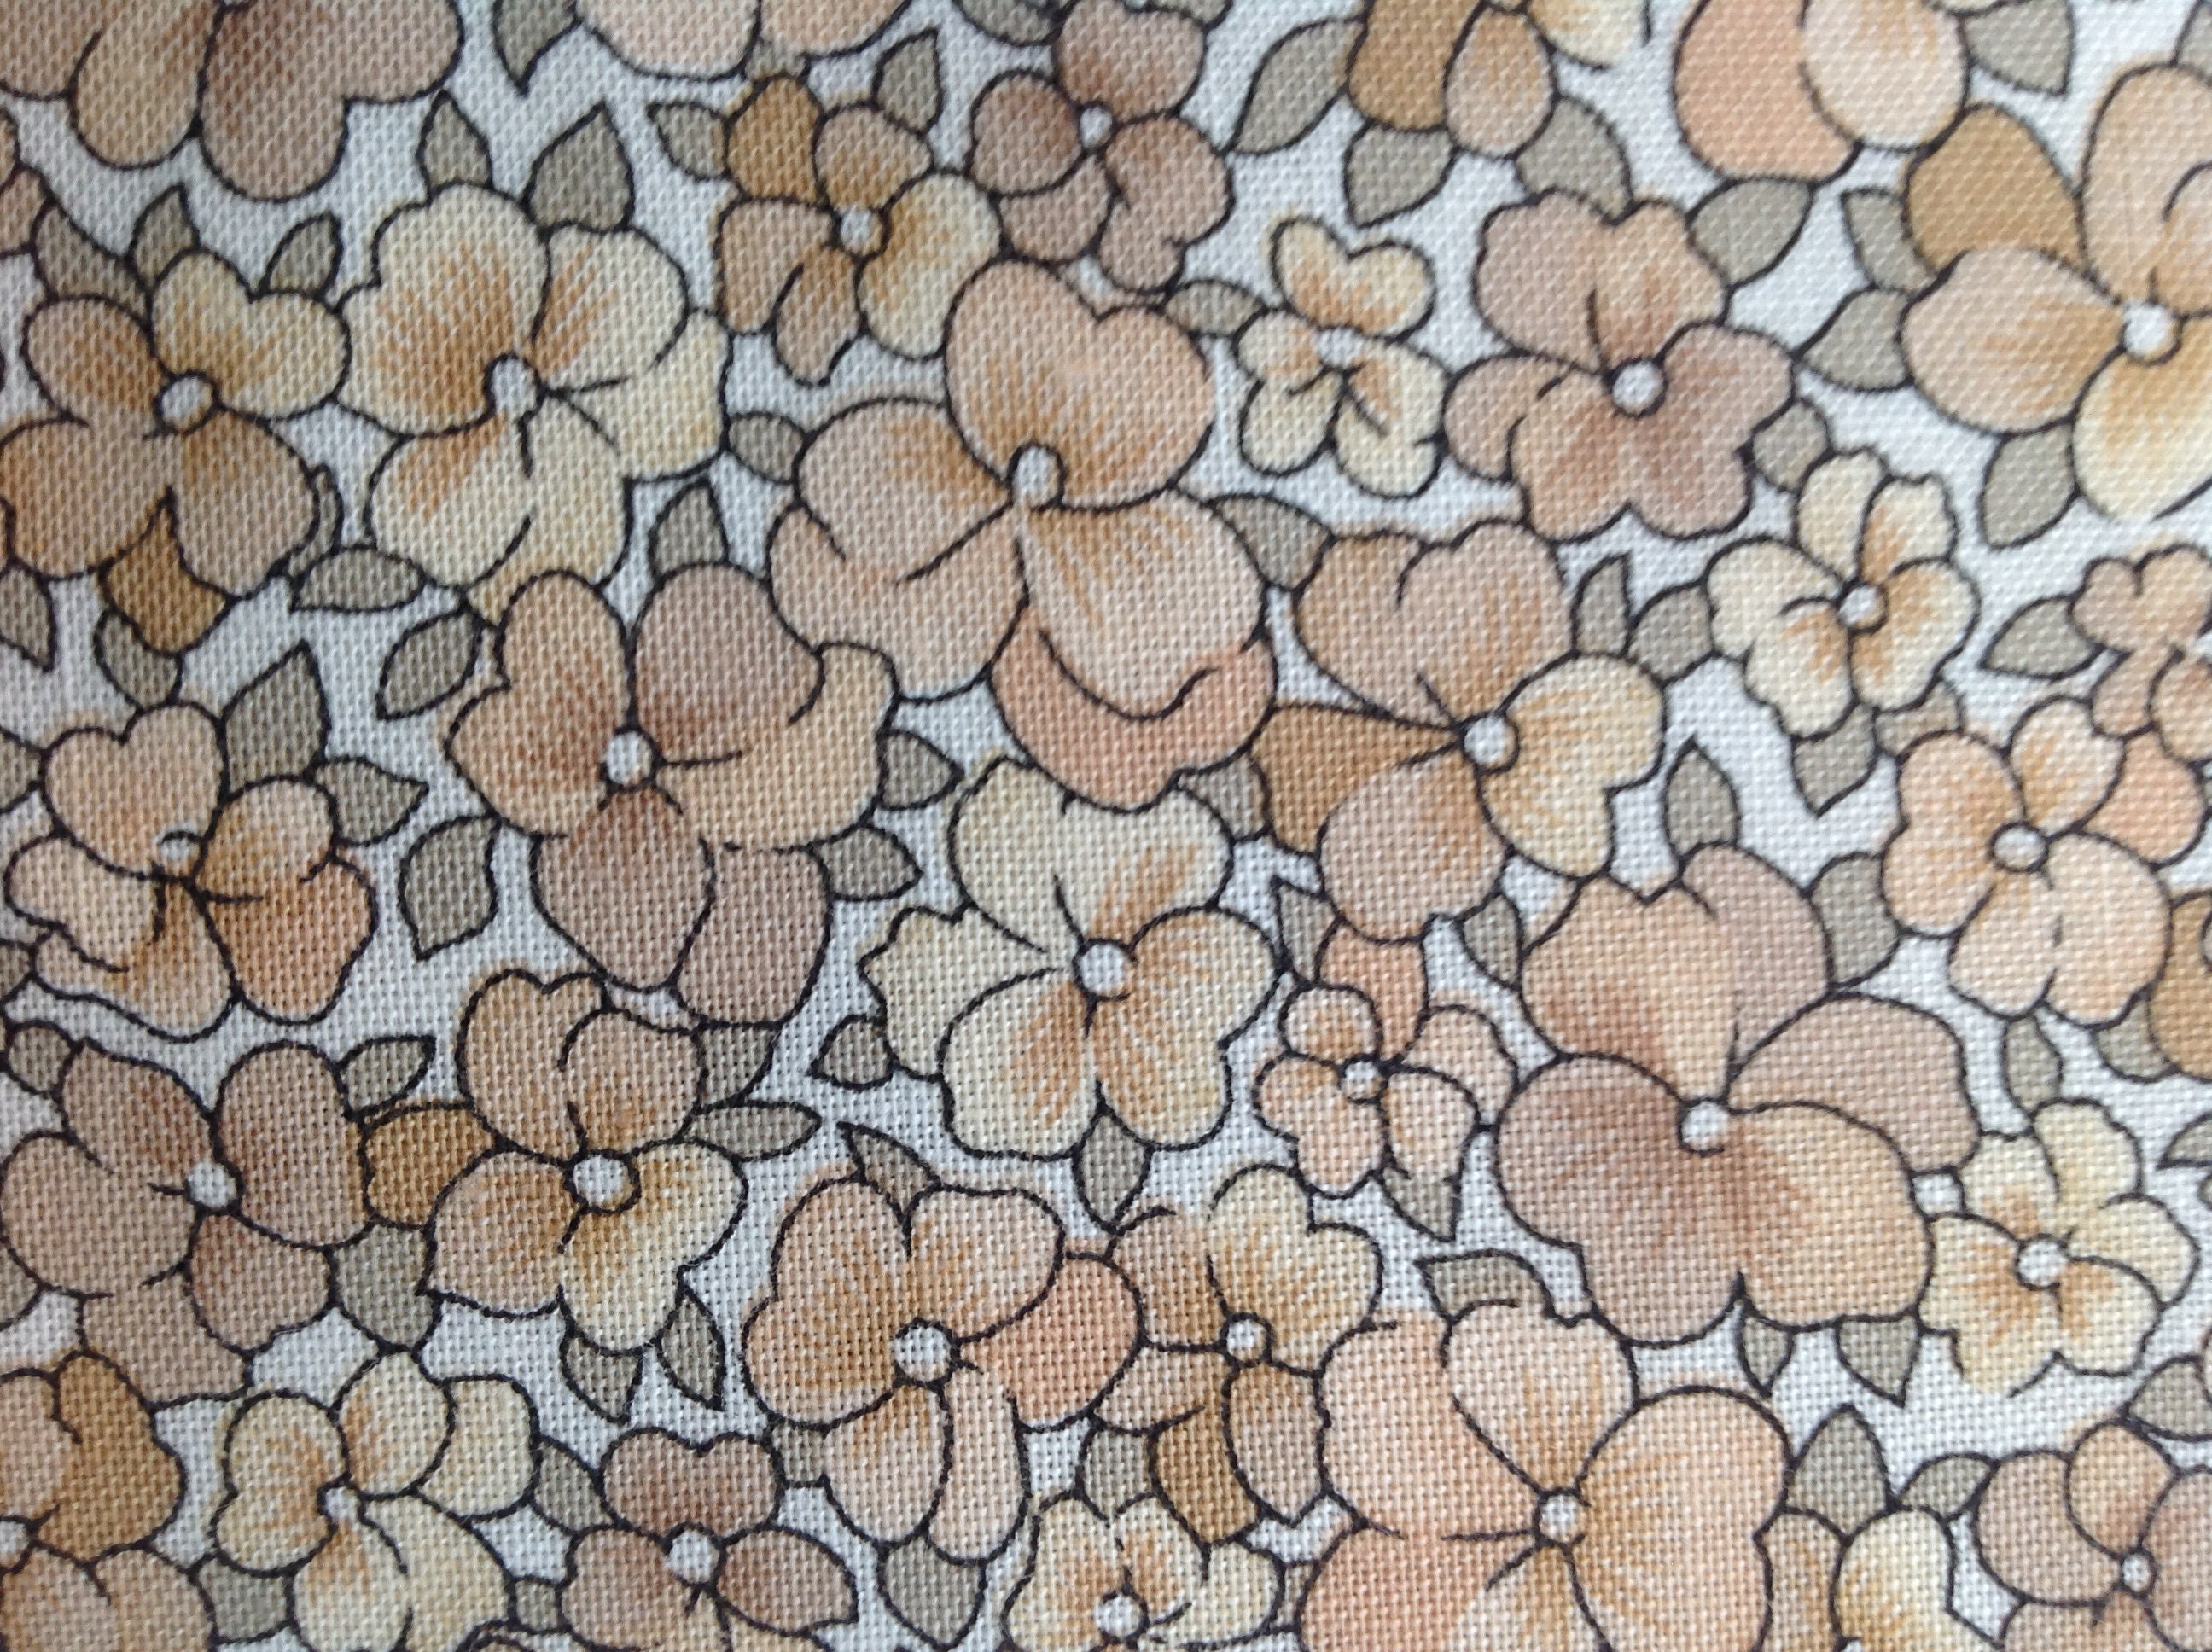 466bff466d61b Bed of Posies by Benartex Fabrics/Vintage Quilting Sewing Fabric/Small  Scale Floral Print/Grey Cream Camel/1.5 Yards/One 54